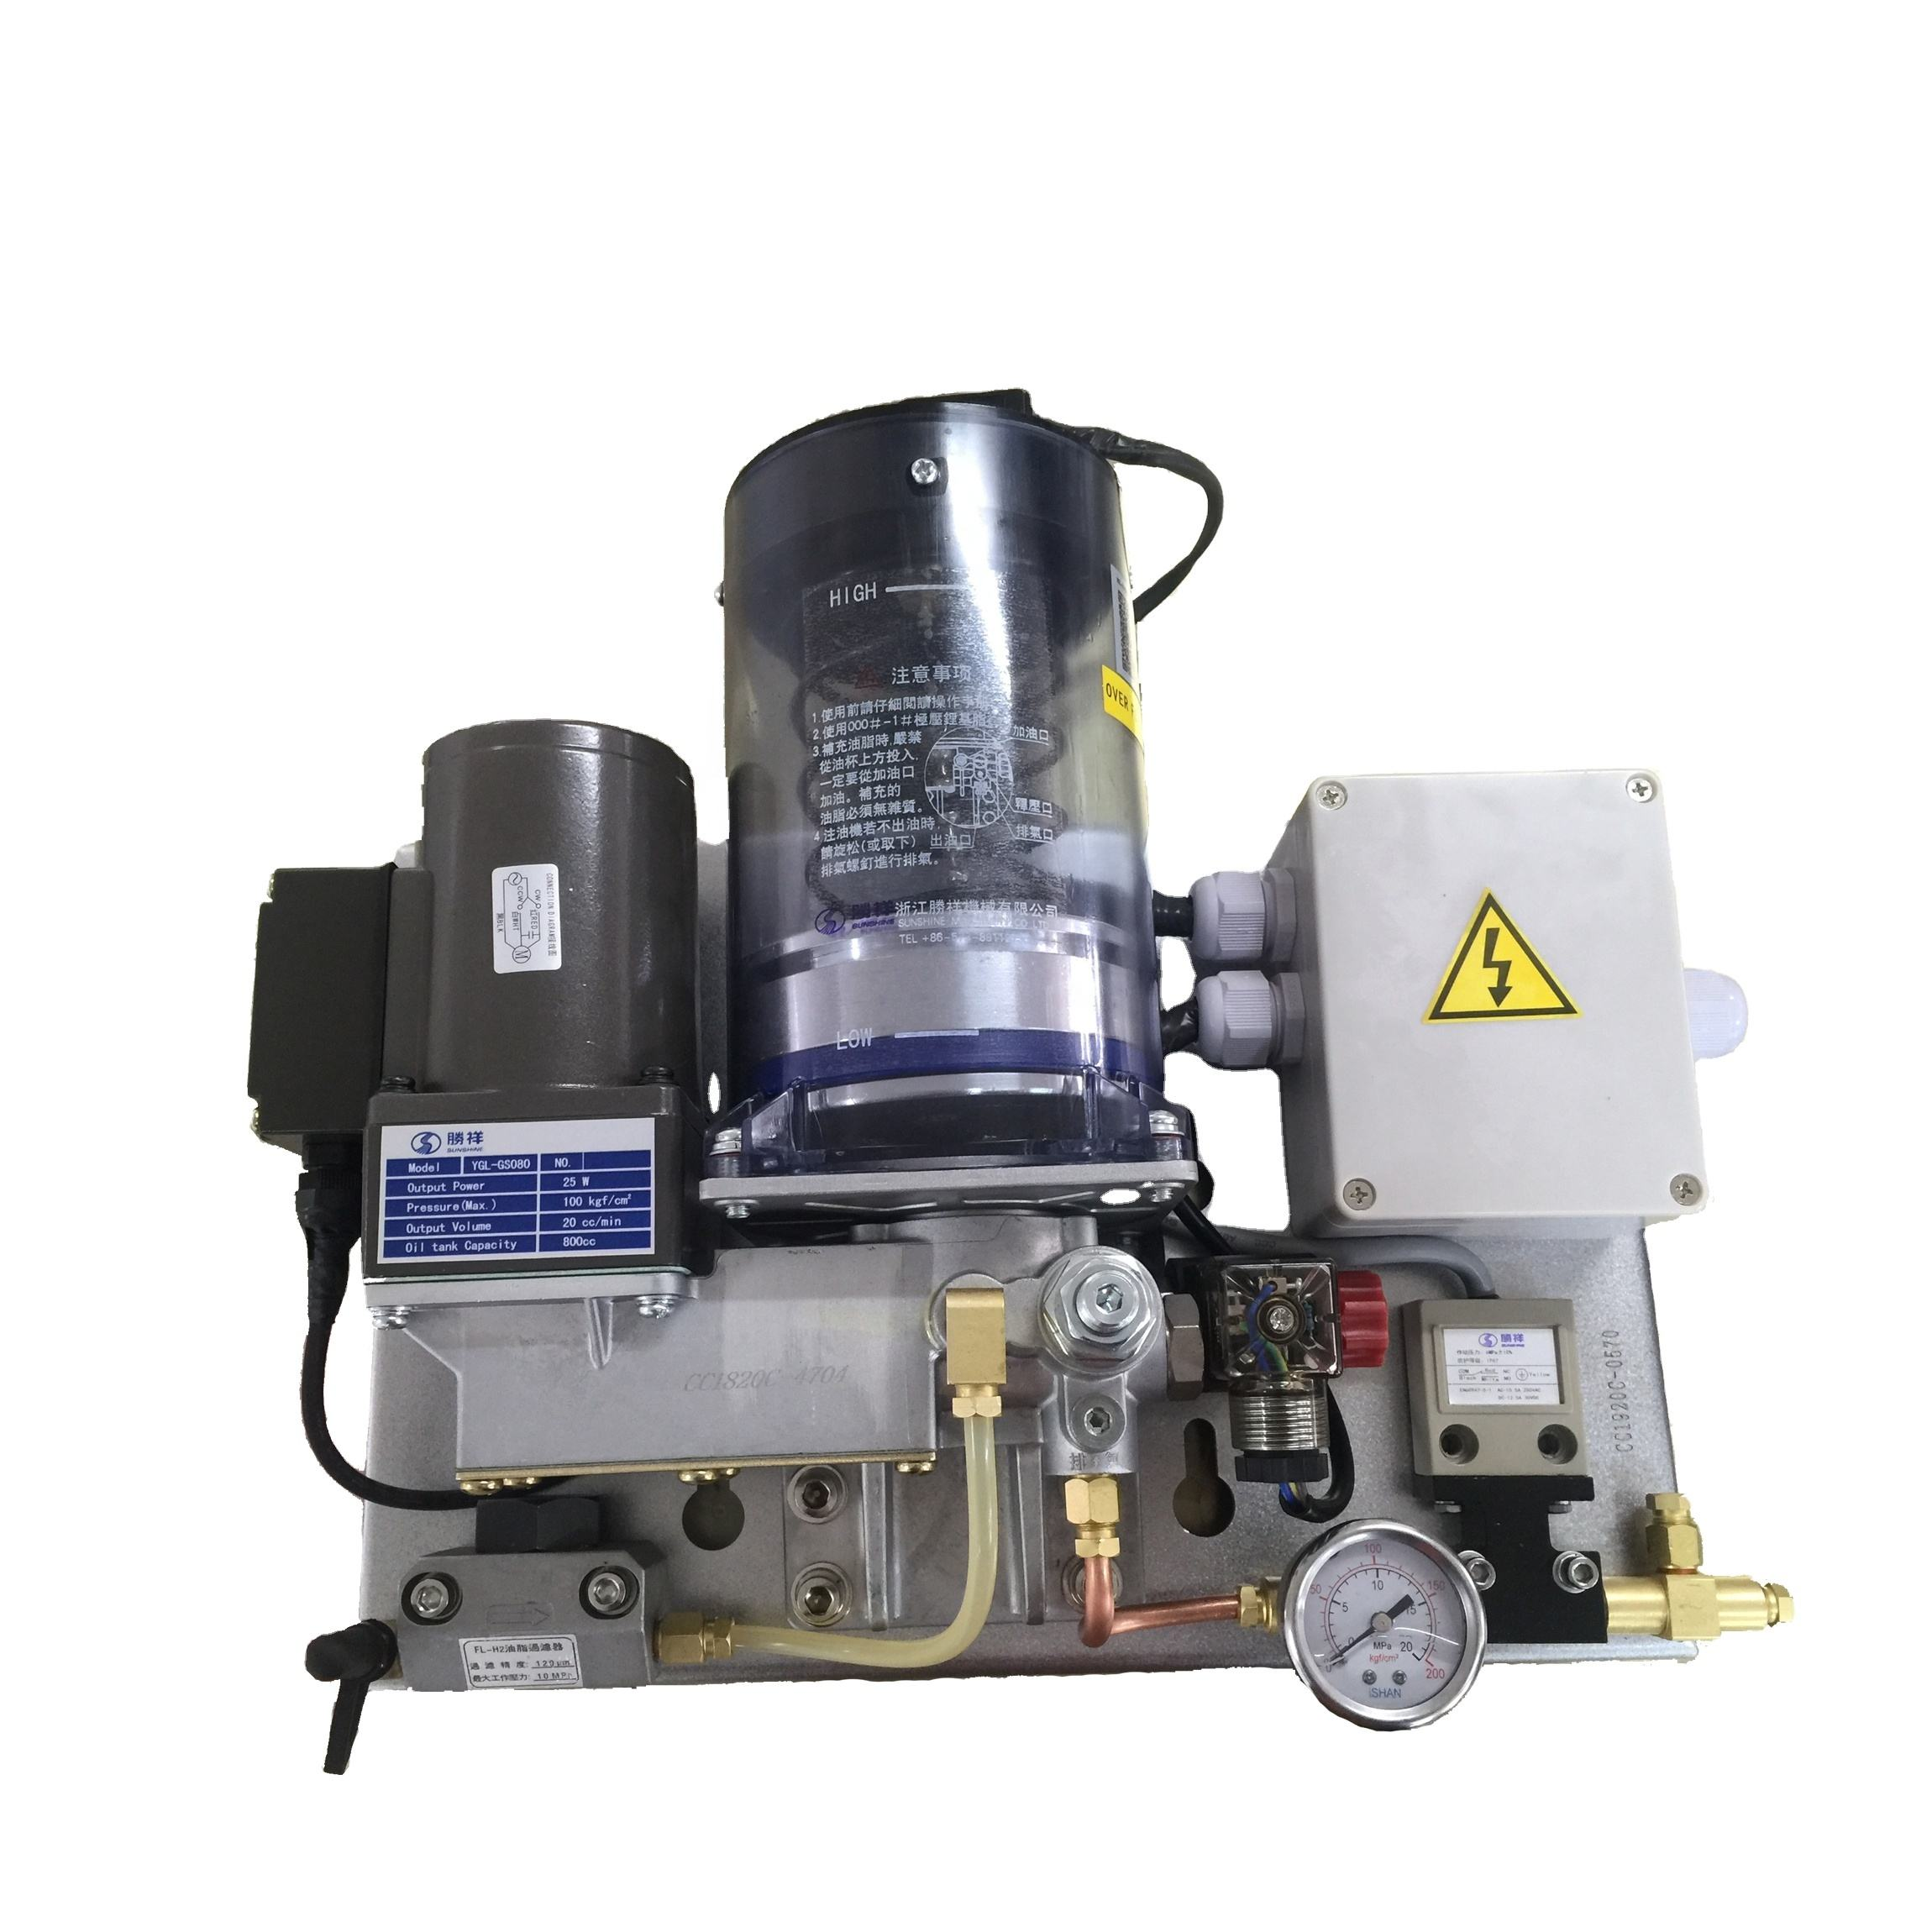 OEM YGL-GS whole set system grease automatic electric centralized lubrication pump volumetric lubricator system